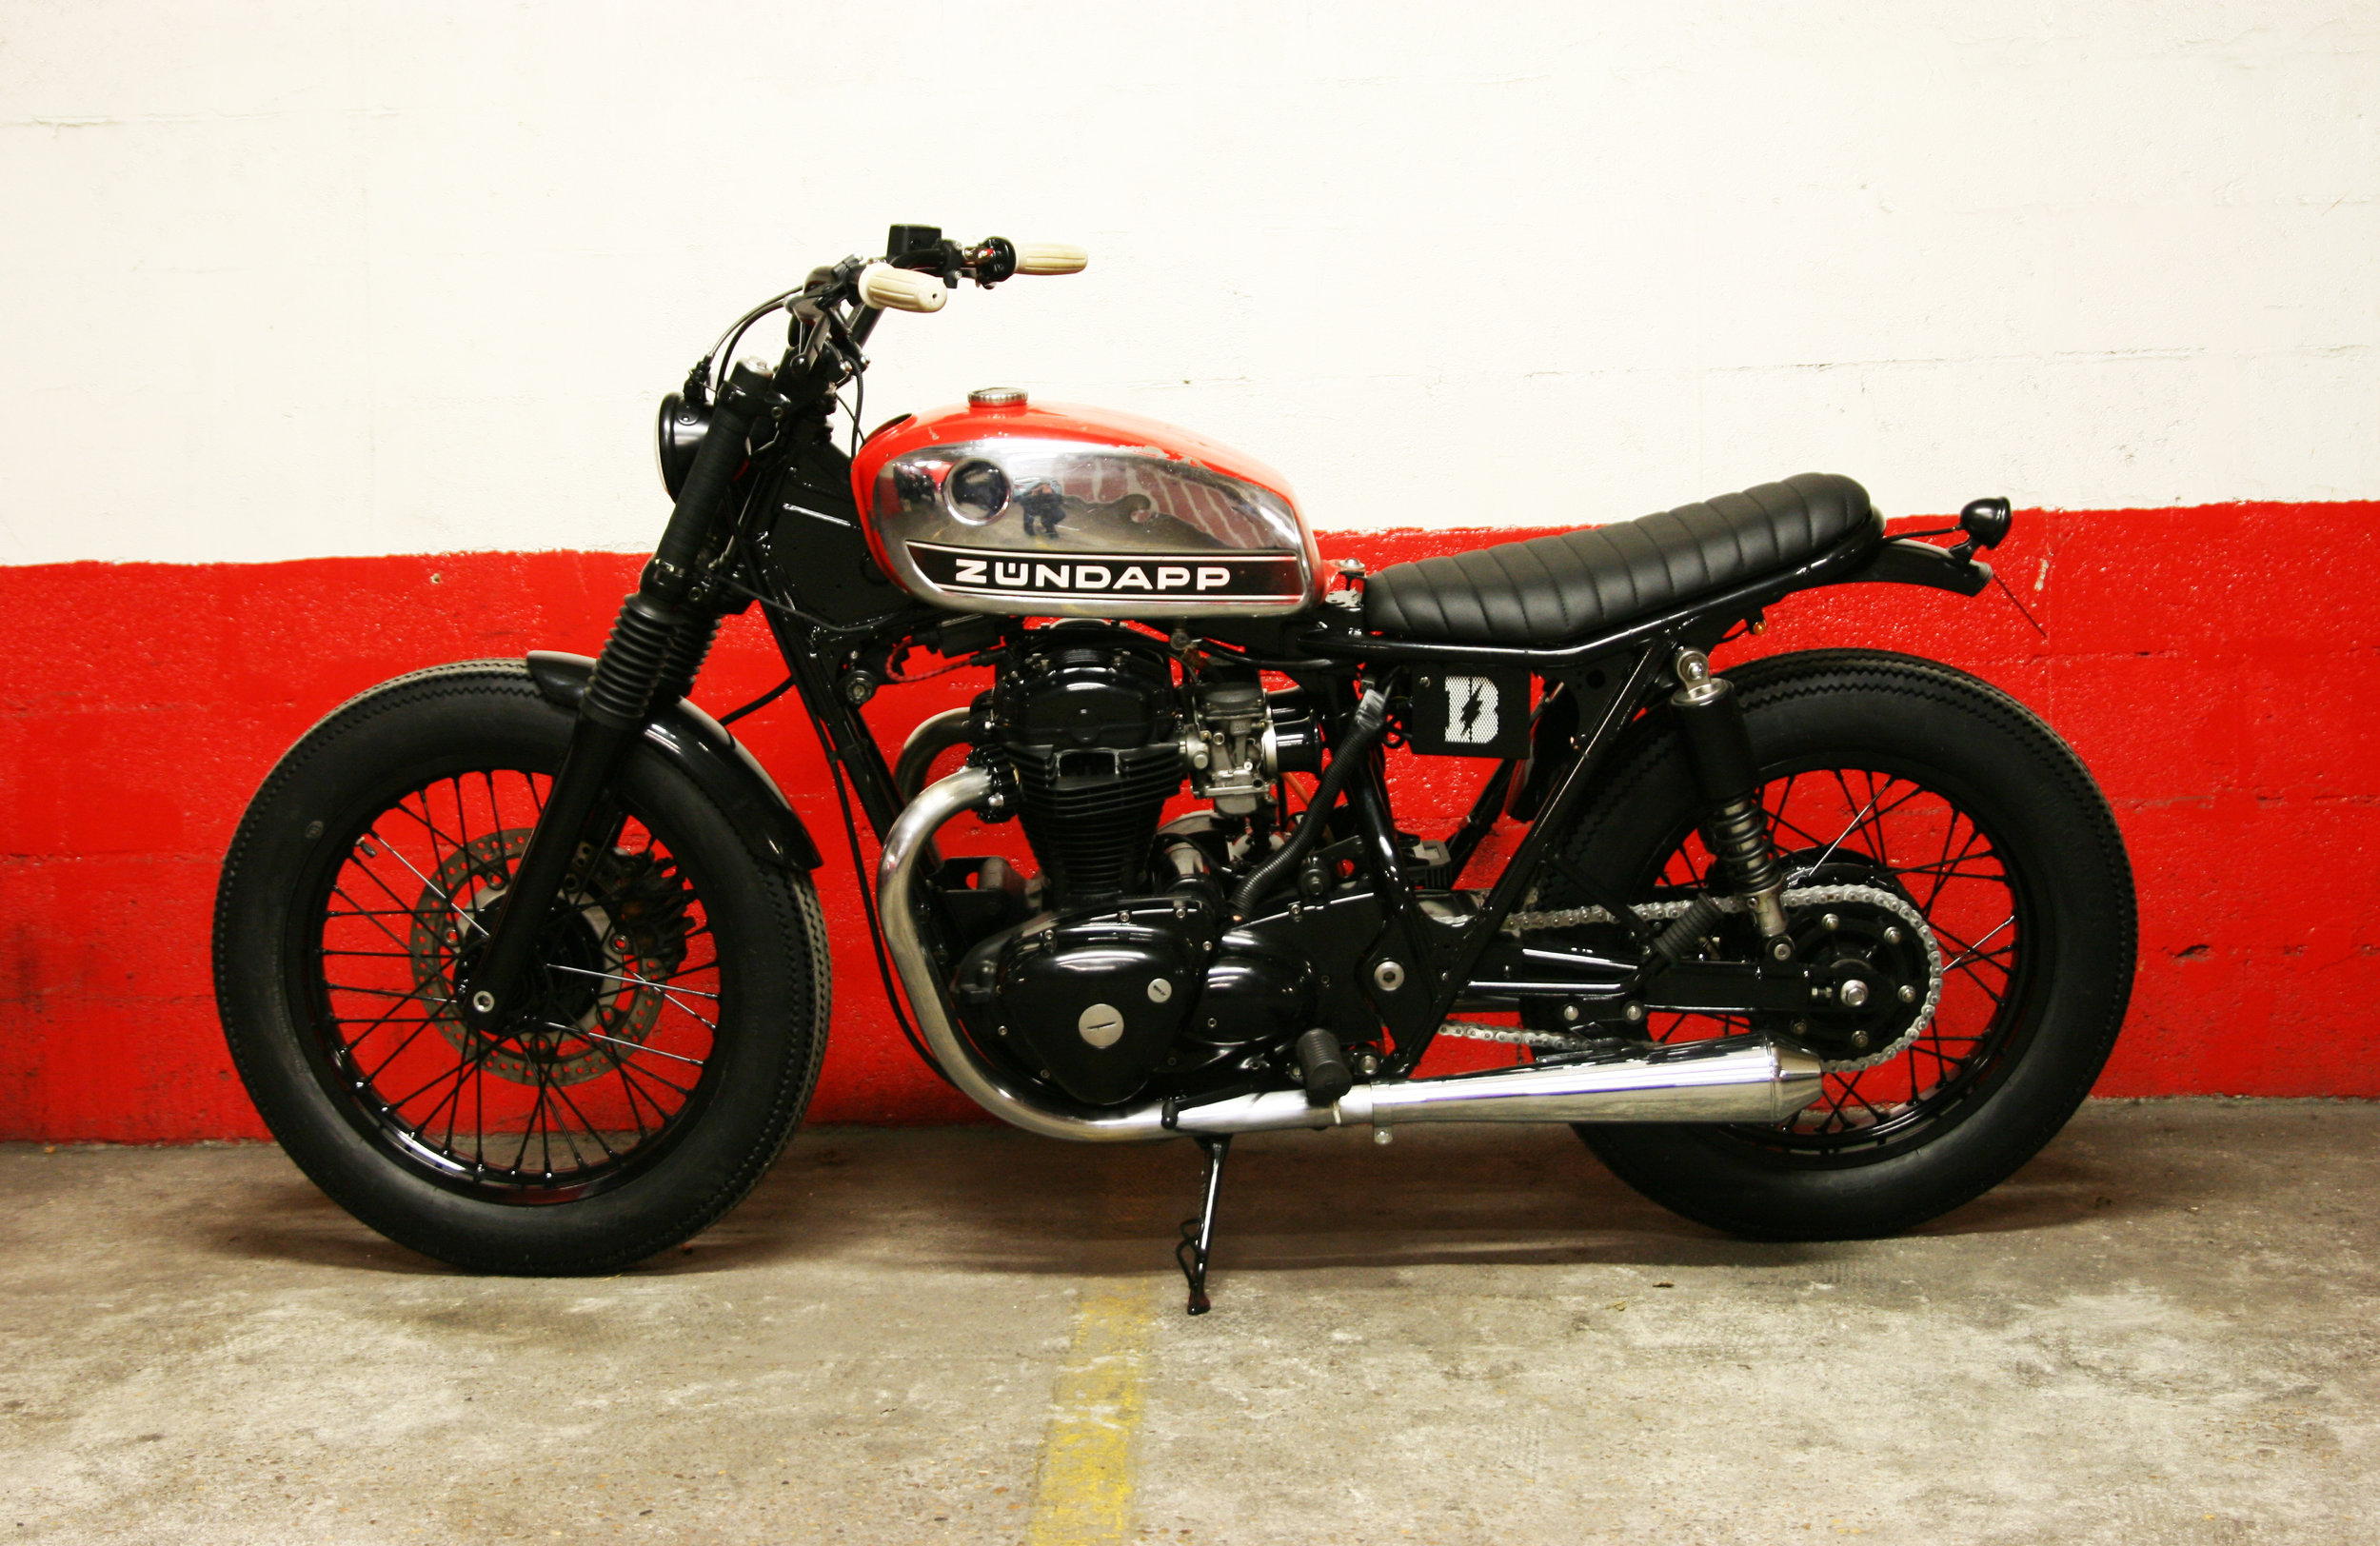 - Fully rebuilt  Kawasaki W650 's engine;  - frame shortened by 3 inches;  - fork shortened by 1 inch